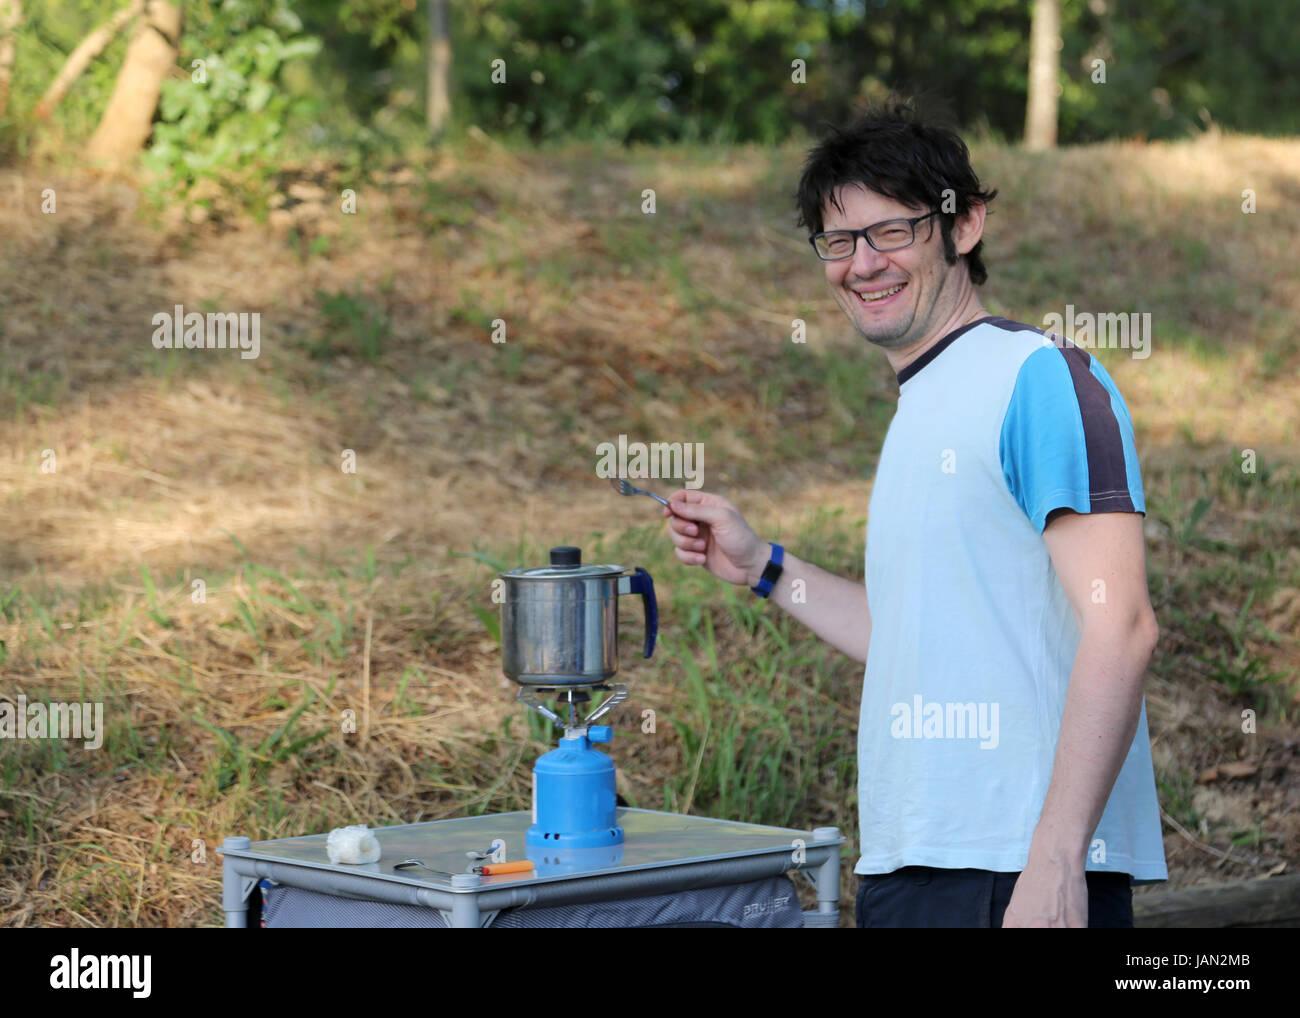 camper prepares dinner in the campsite of the resort Stock Photo